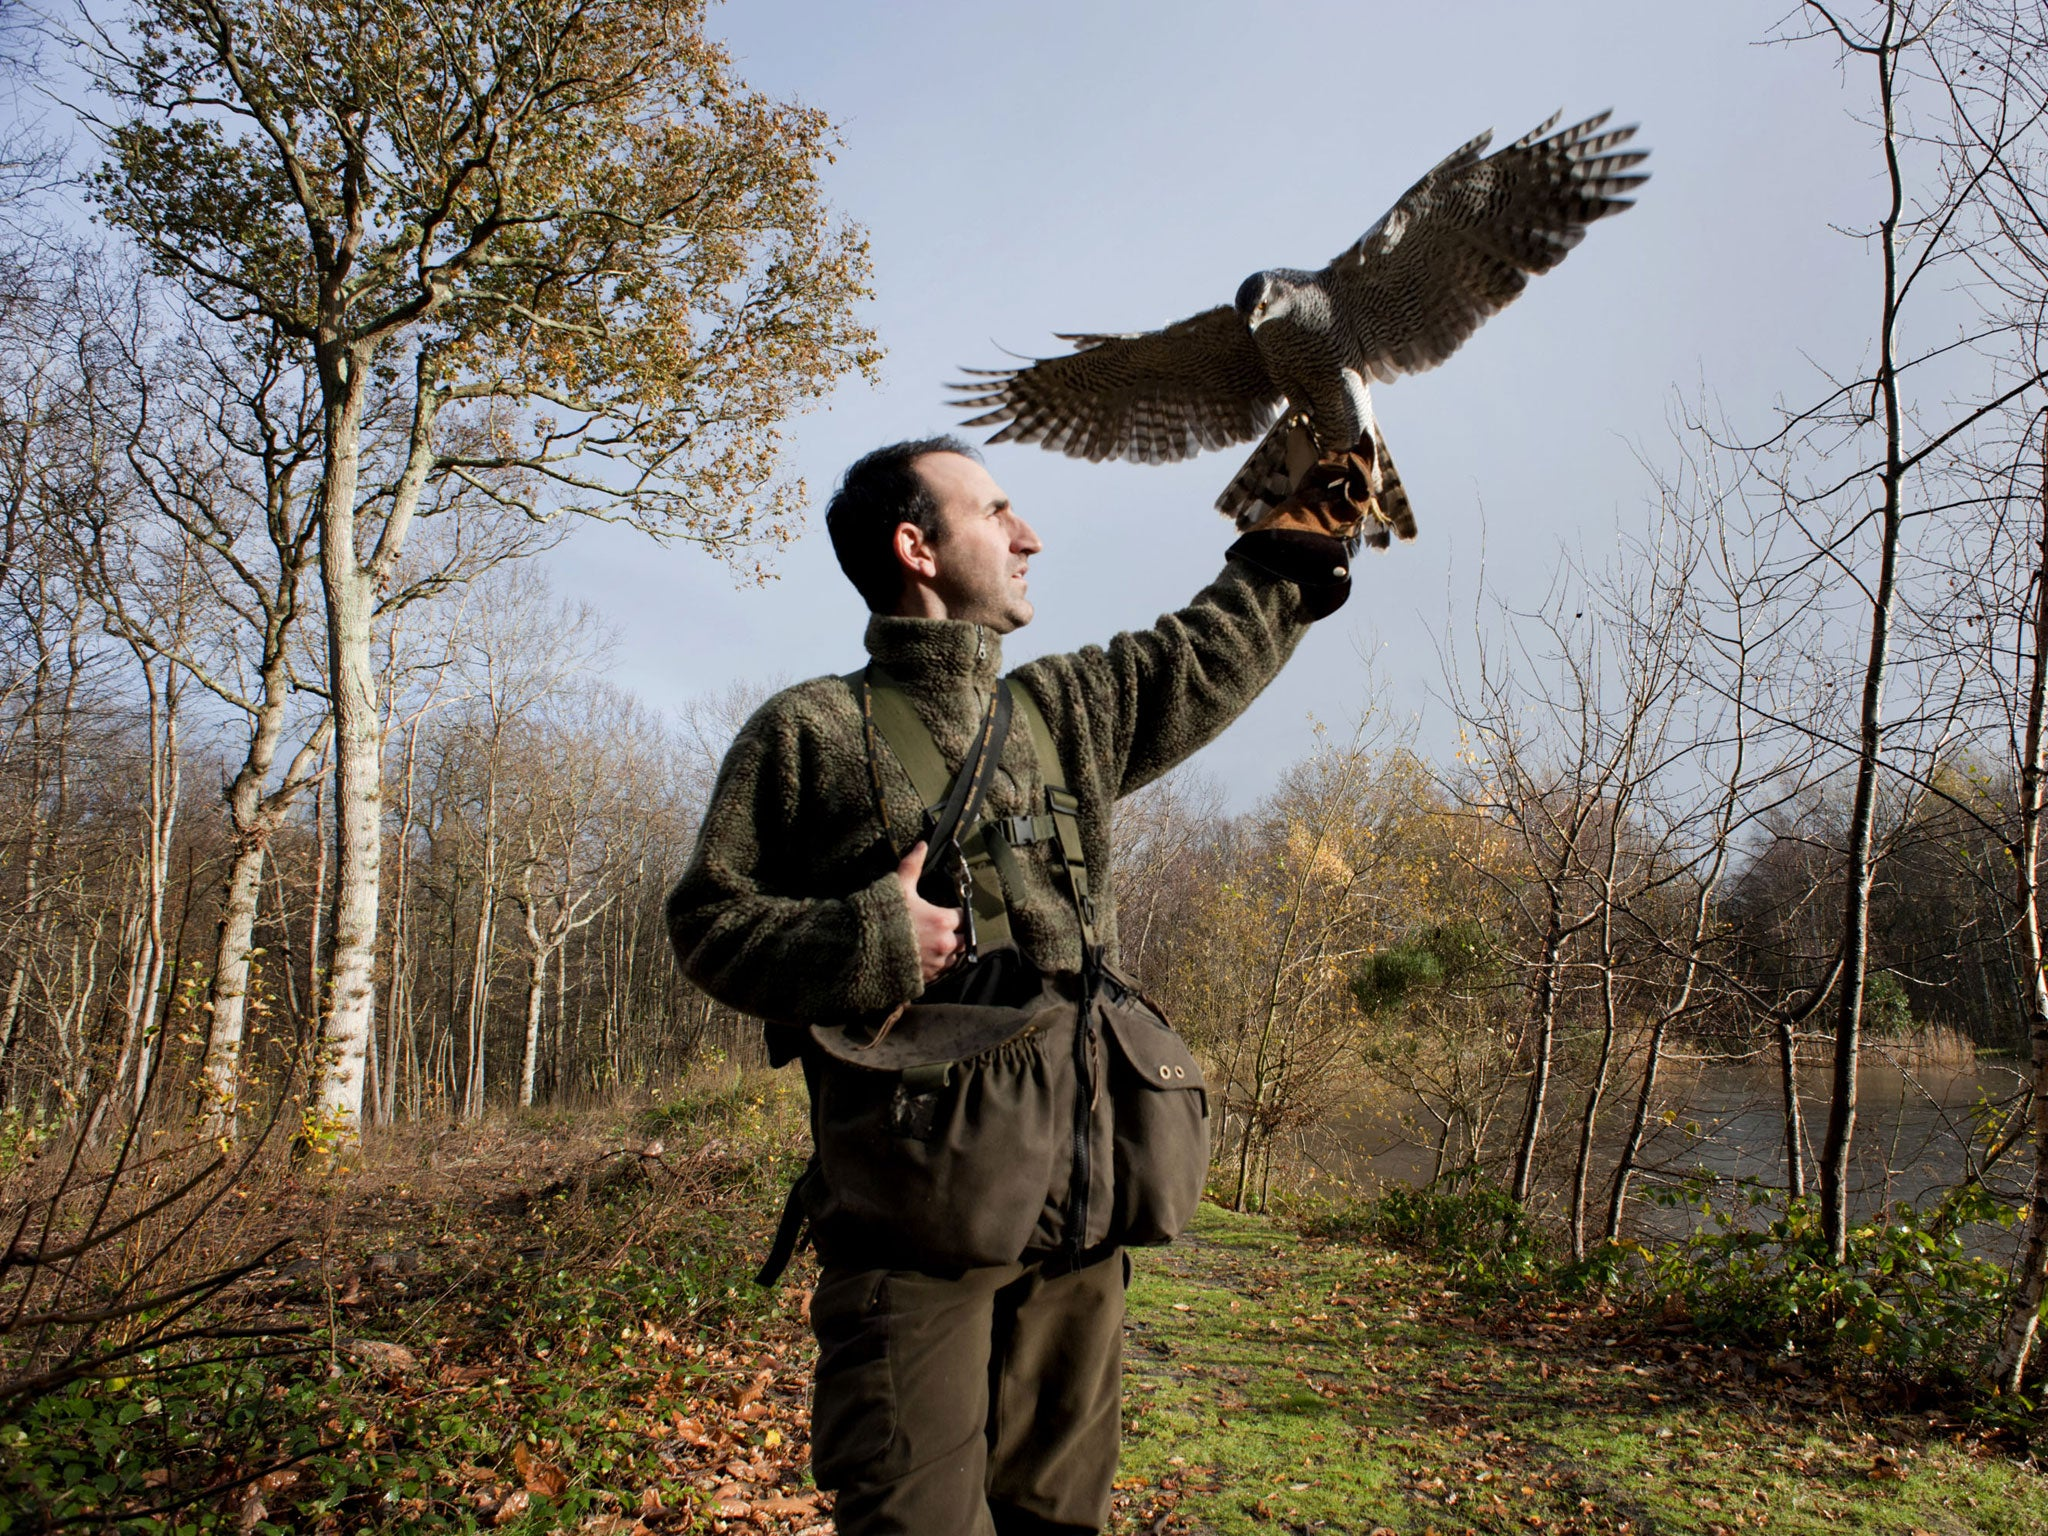 Come Fly With Me Britains Passion For Birds Of Prey The Independent